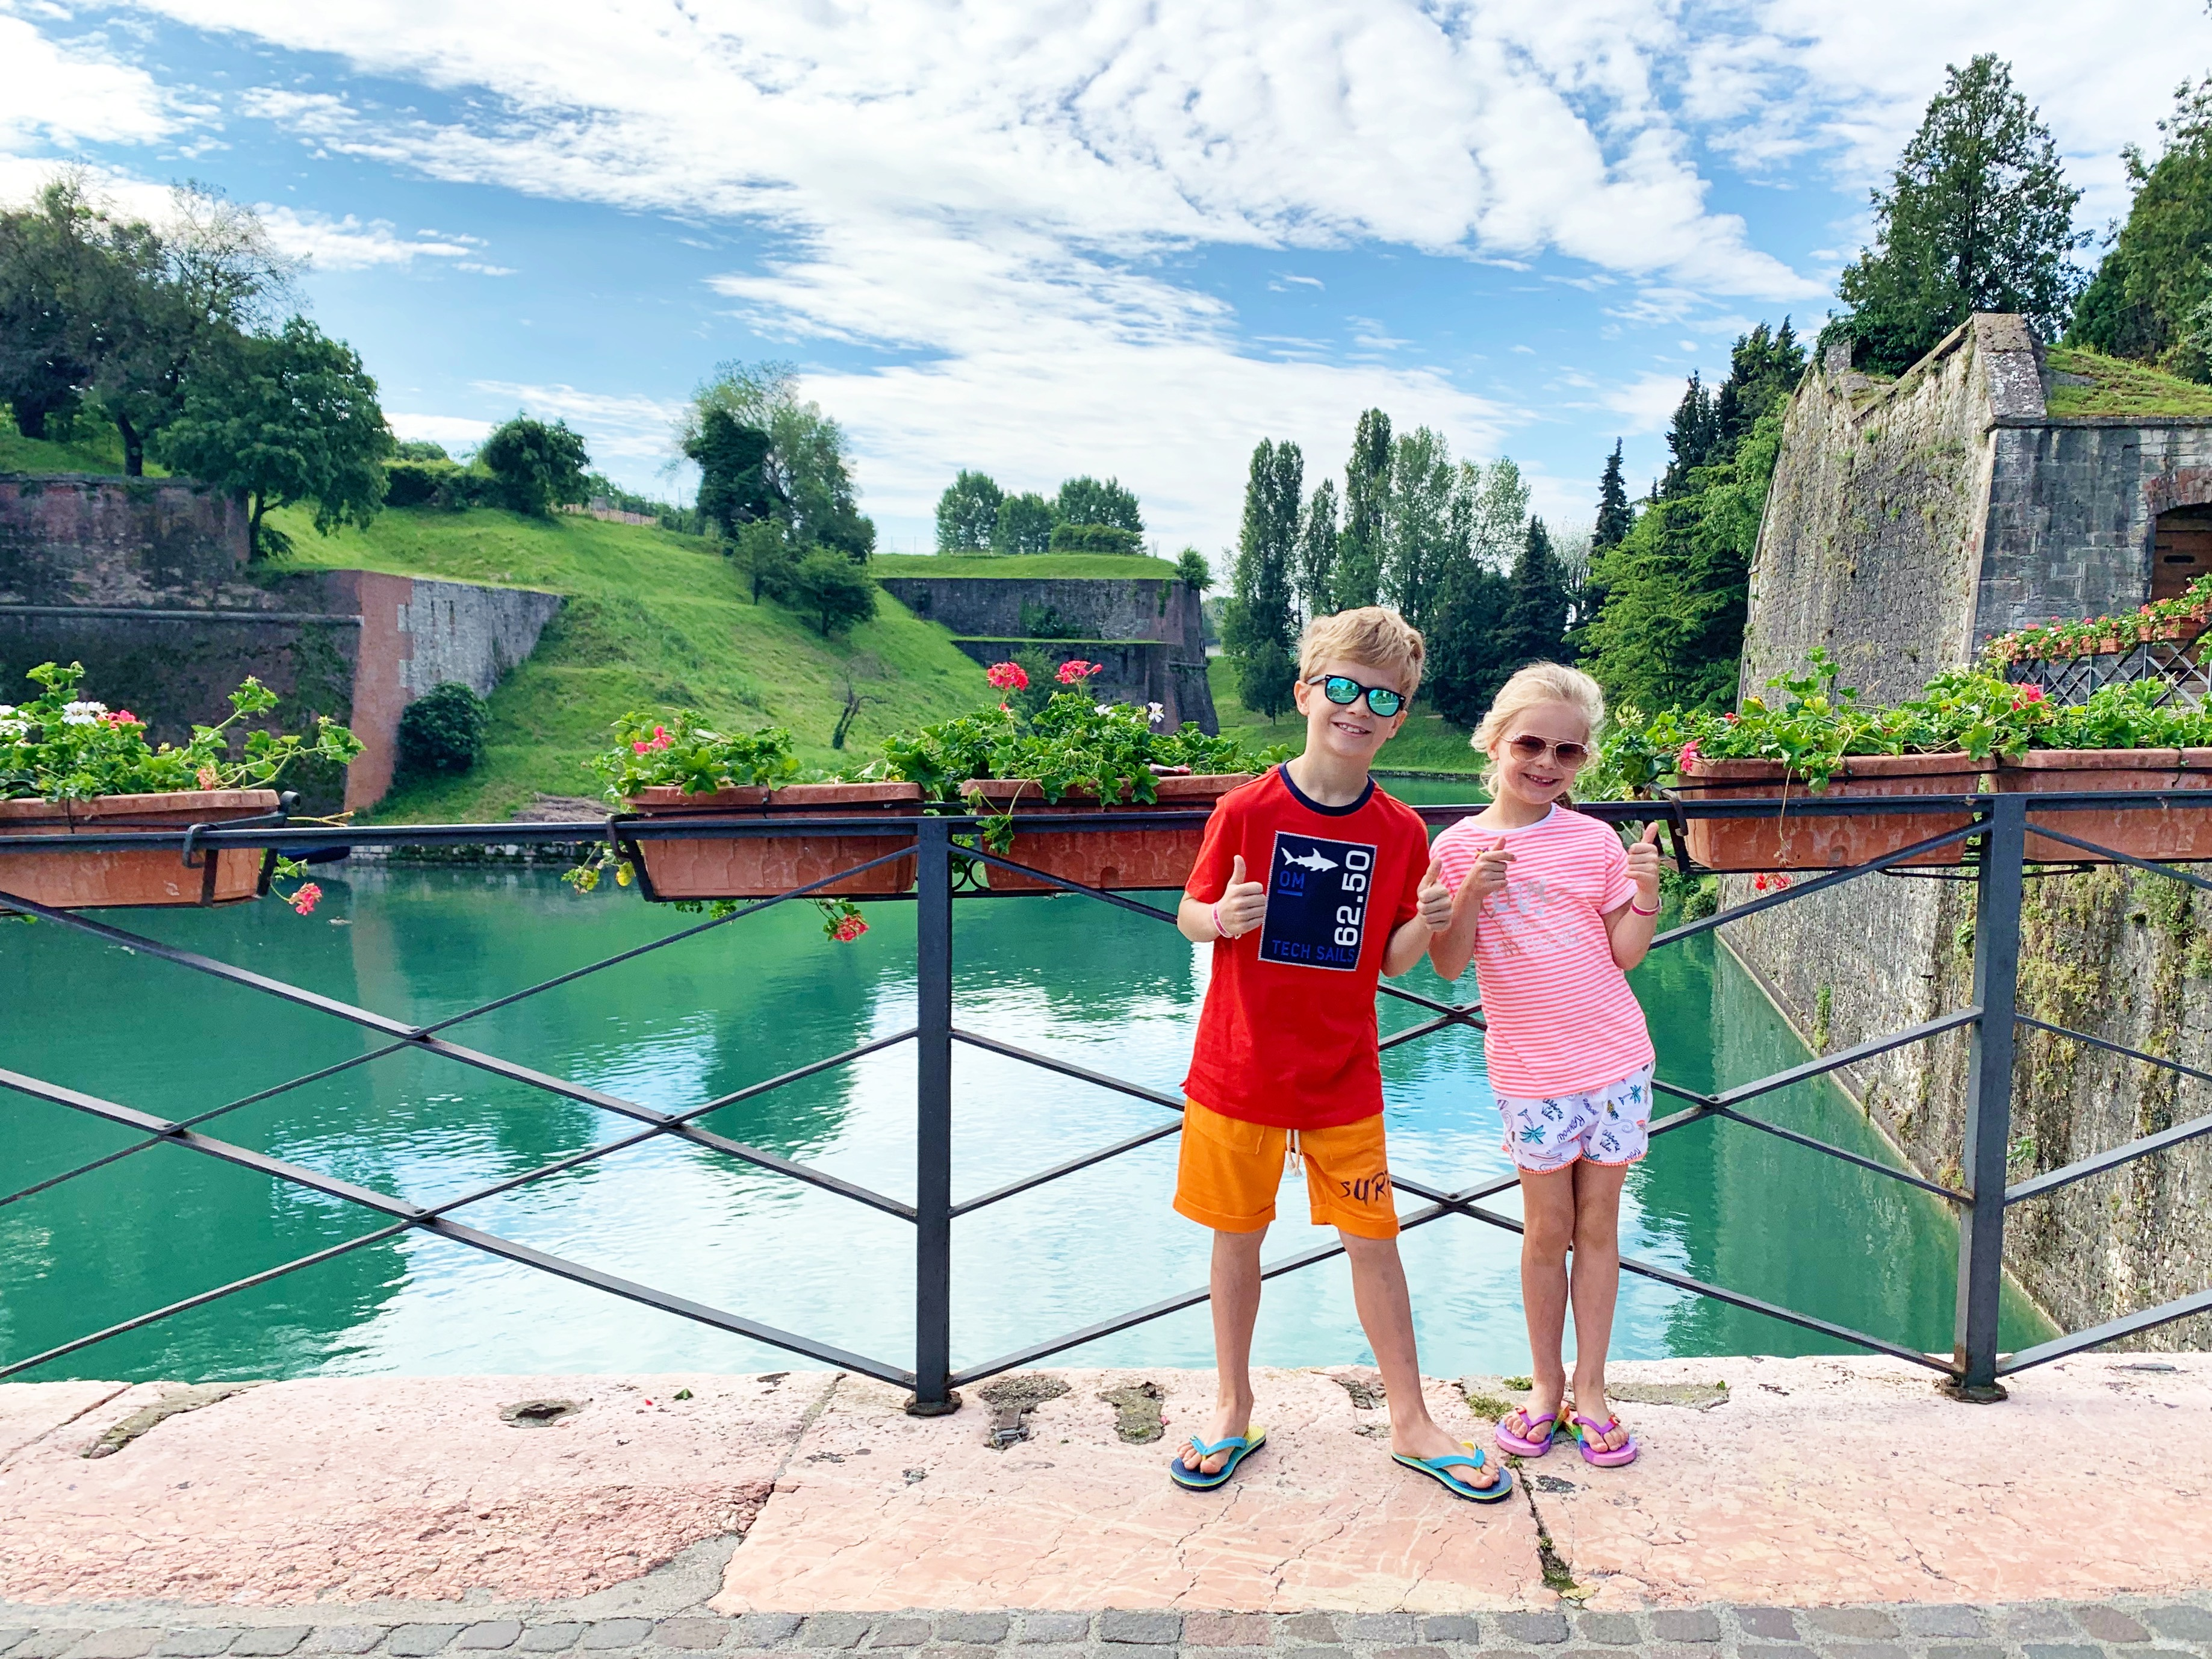 2 kids give a double thumbs up to the camera while standing next to some water in Italy